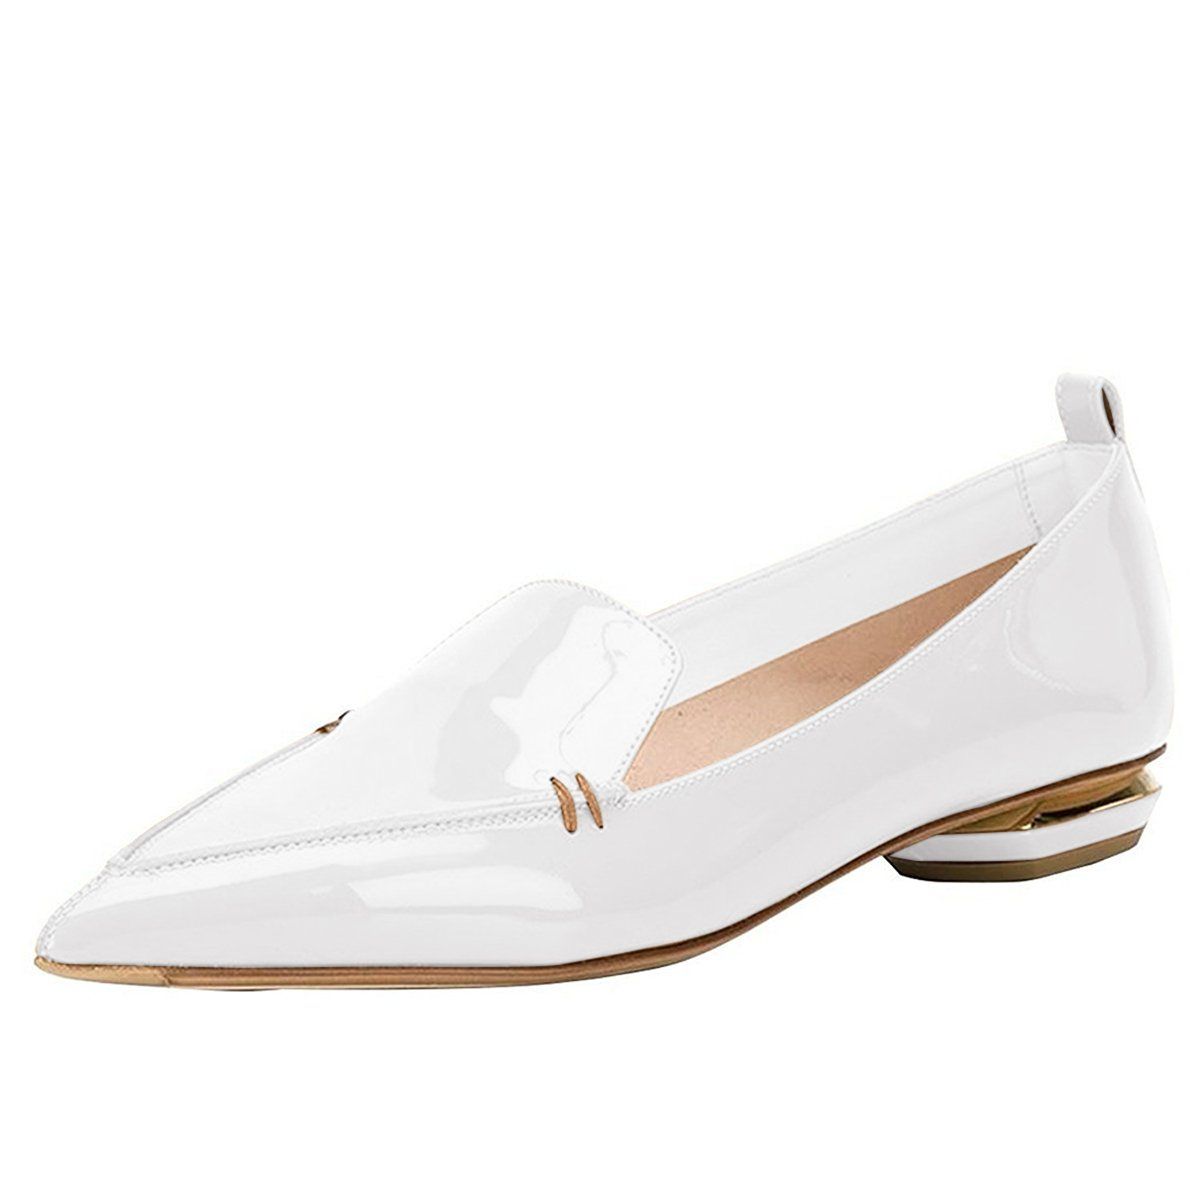 FSJ Women Fashion Pointed Toe Pumps Low Heels Casual Loafers Slip On Summer Shoes Size 9.5 White-Patent